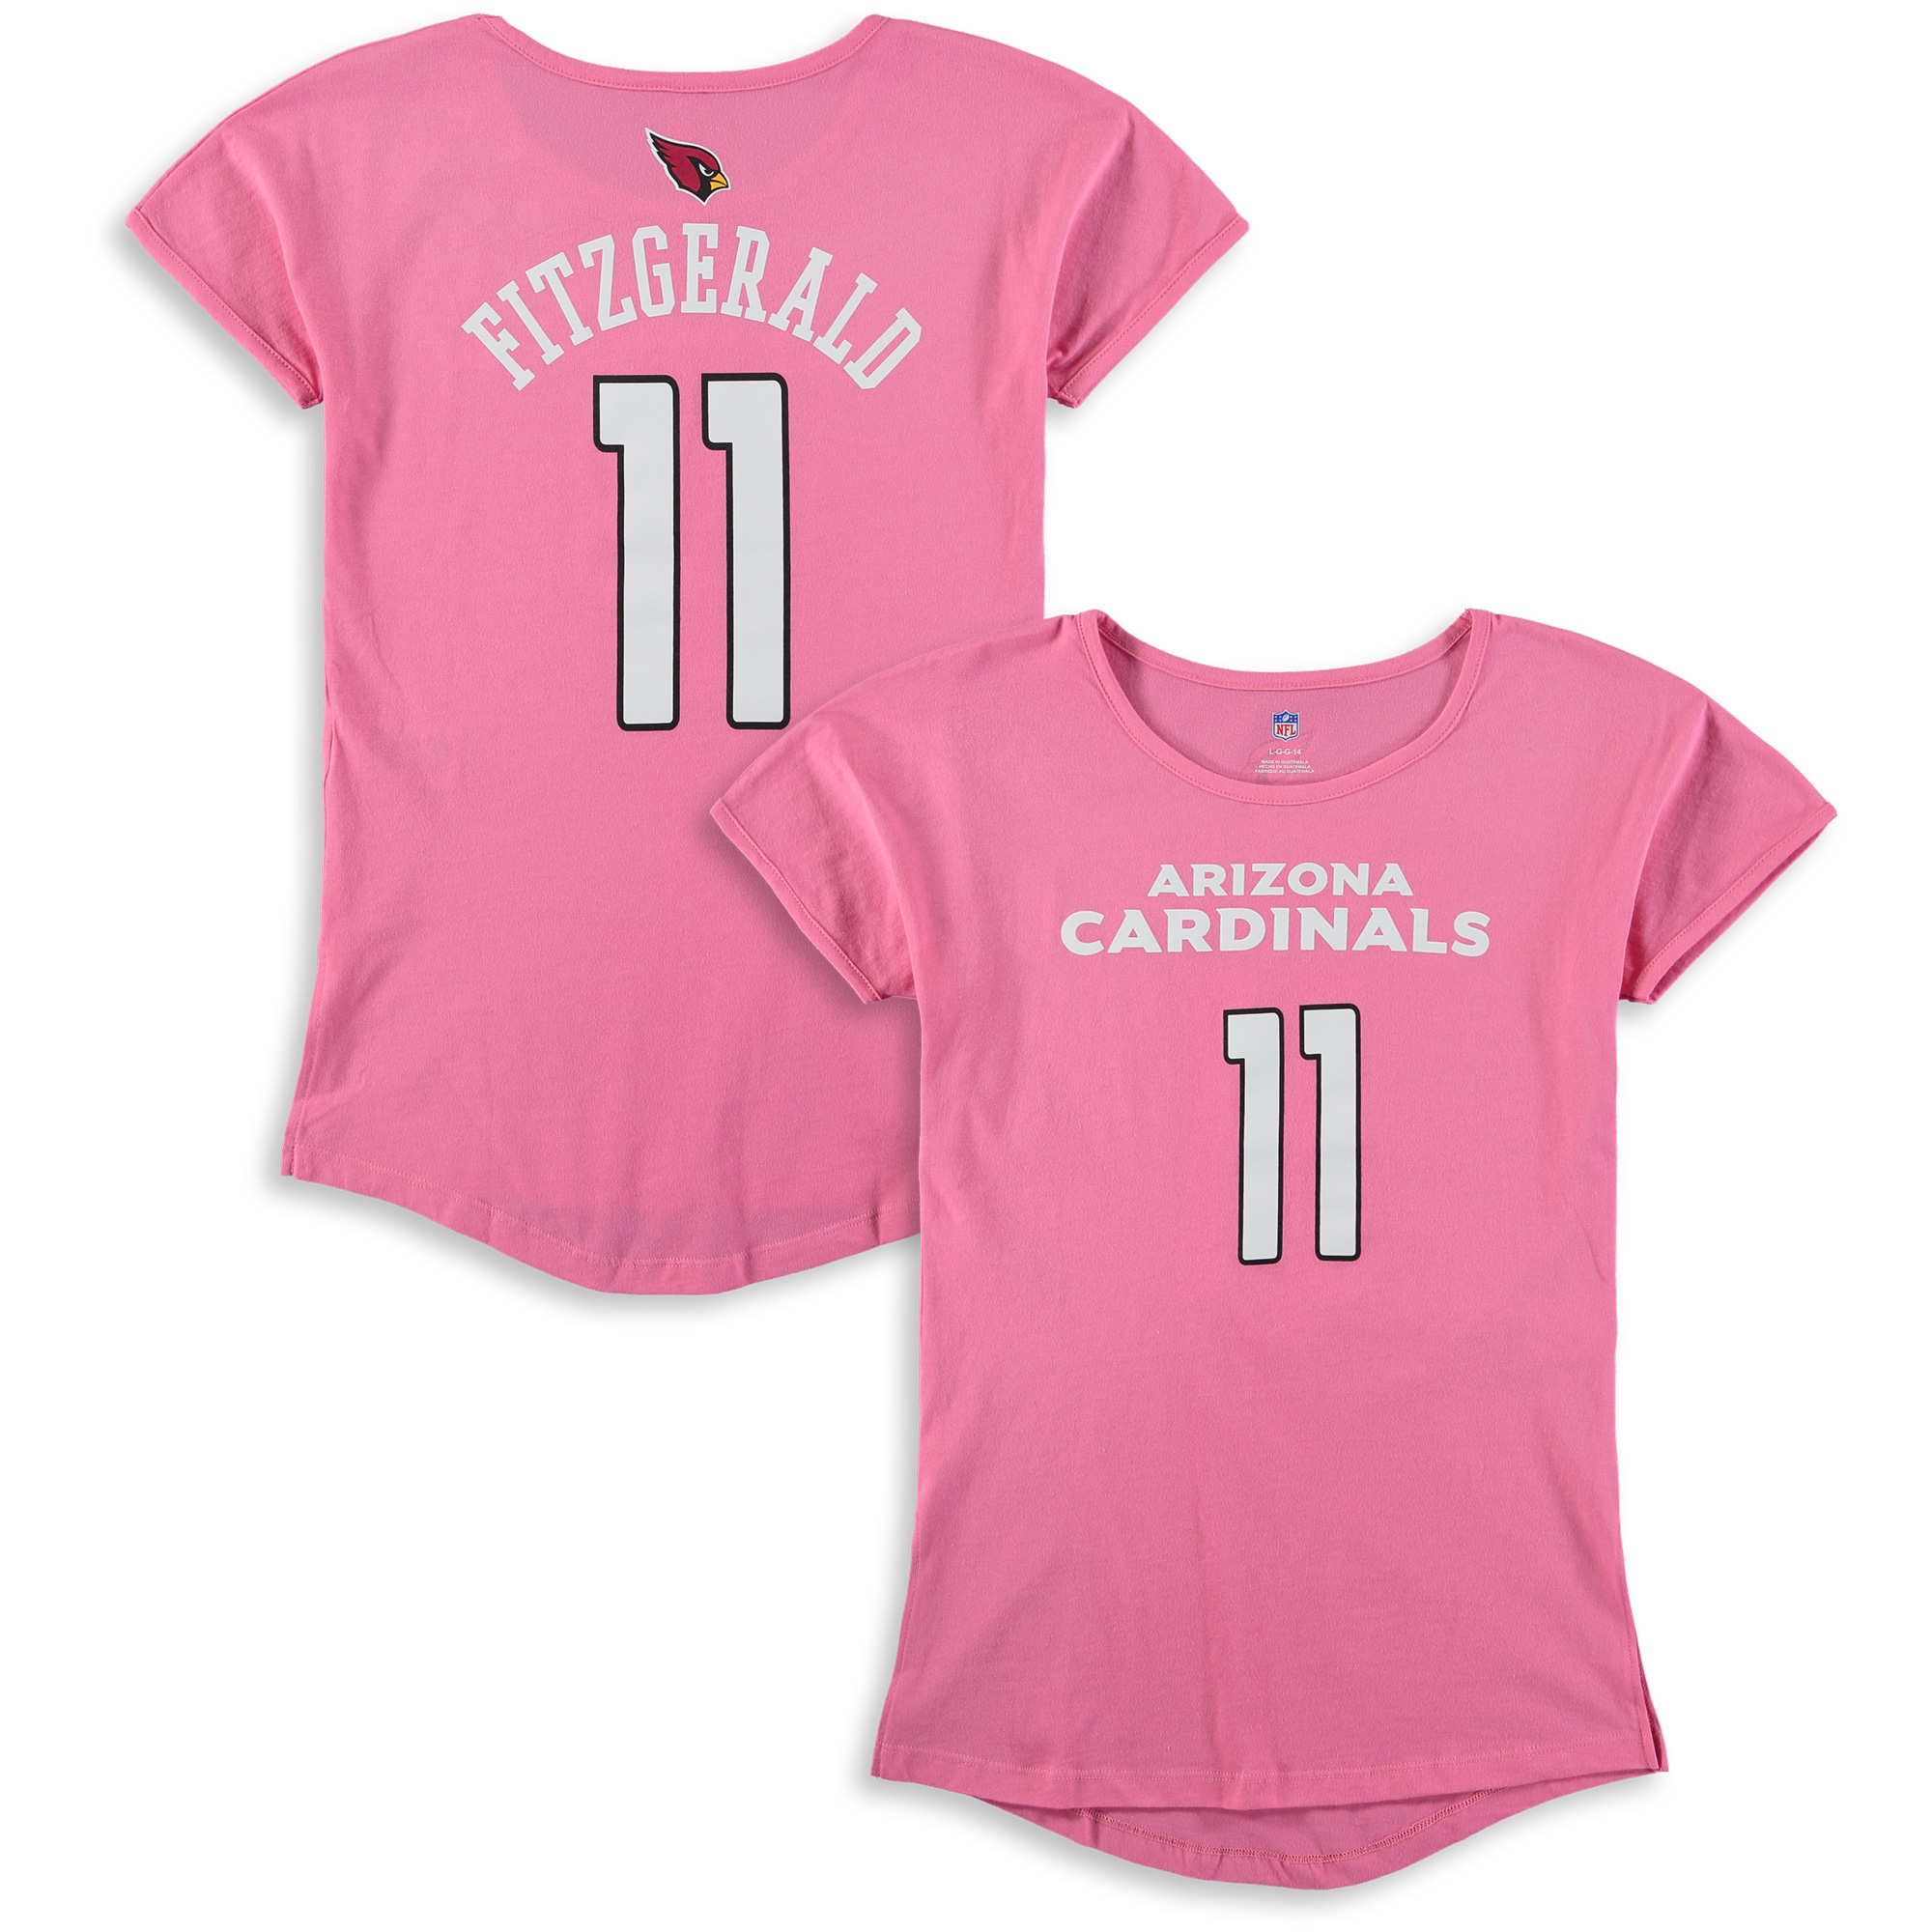 Larry Fitzgerald Arizona Cardinals Girls Youth Dolman Mainliner Name & Number T-Shirt - Pink